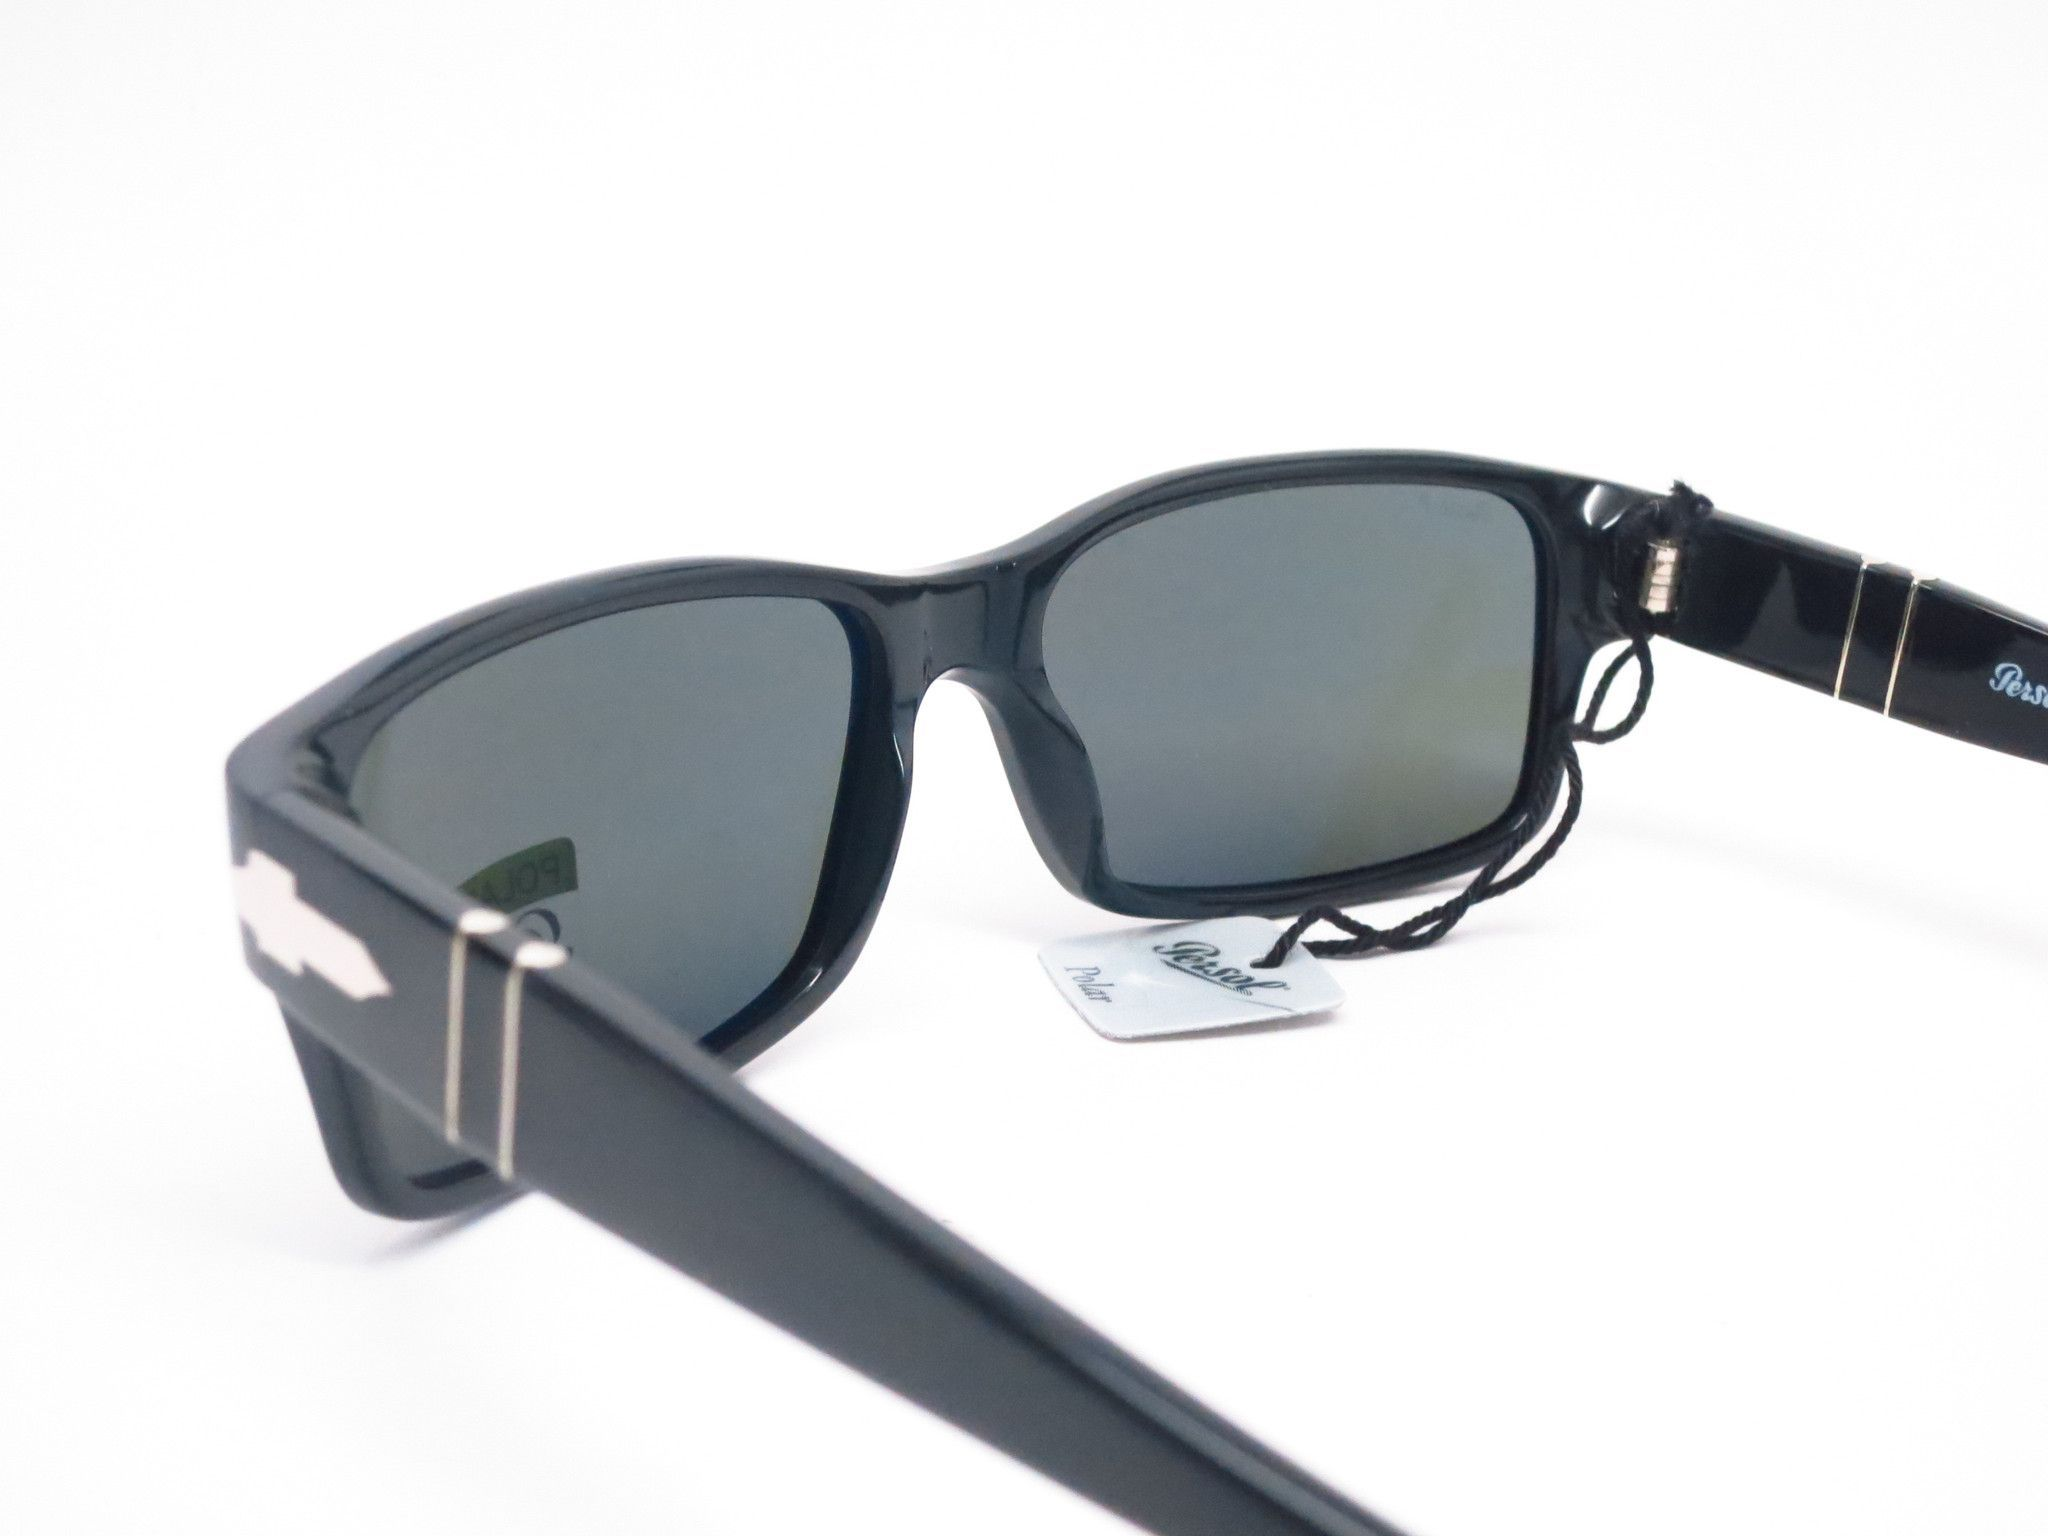 9d8cc81eaa31c Product Details of Persol PO 2803S Sunglasses Brand   Persol Model Name    PO 2803S Color